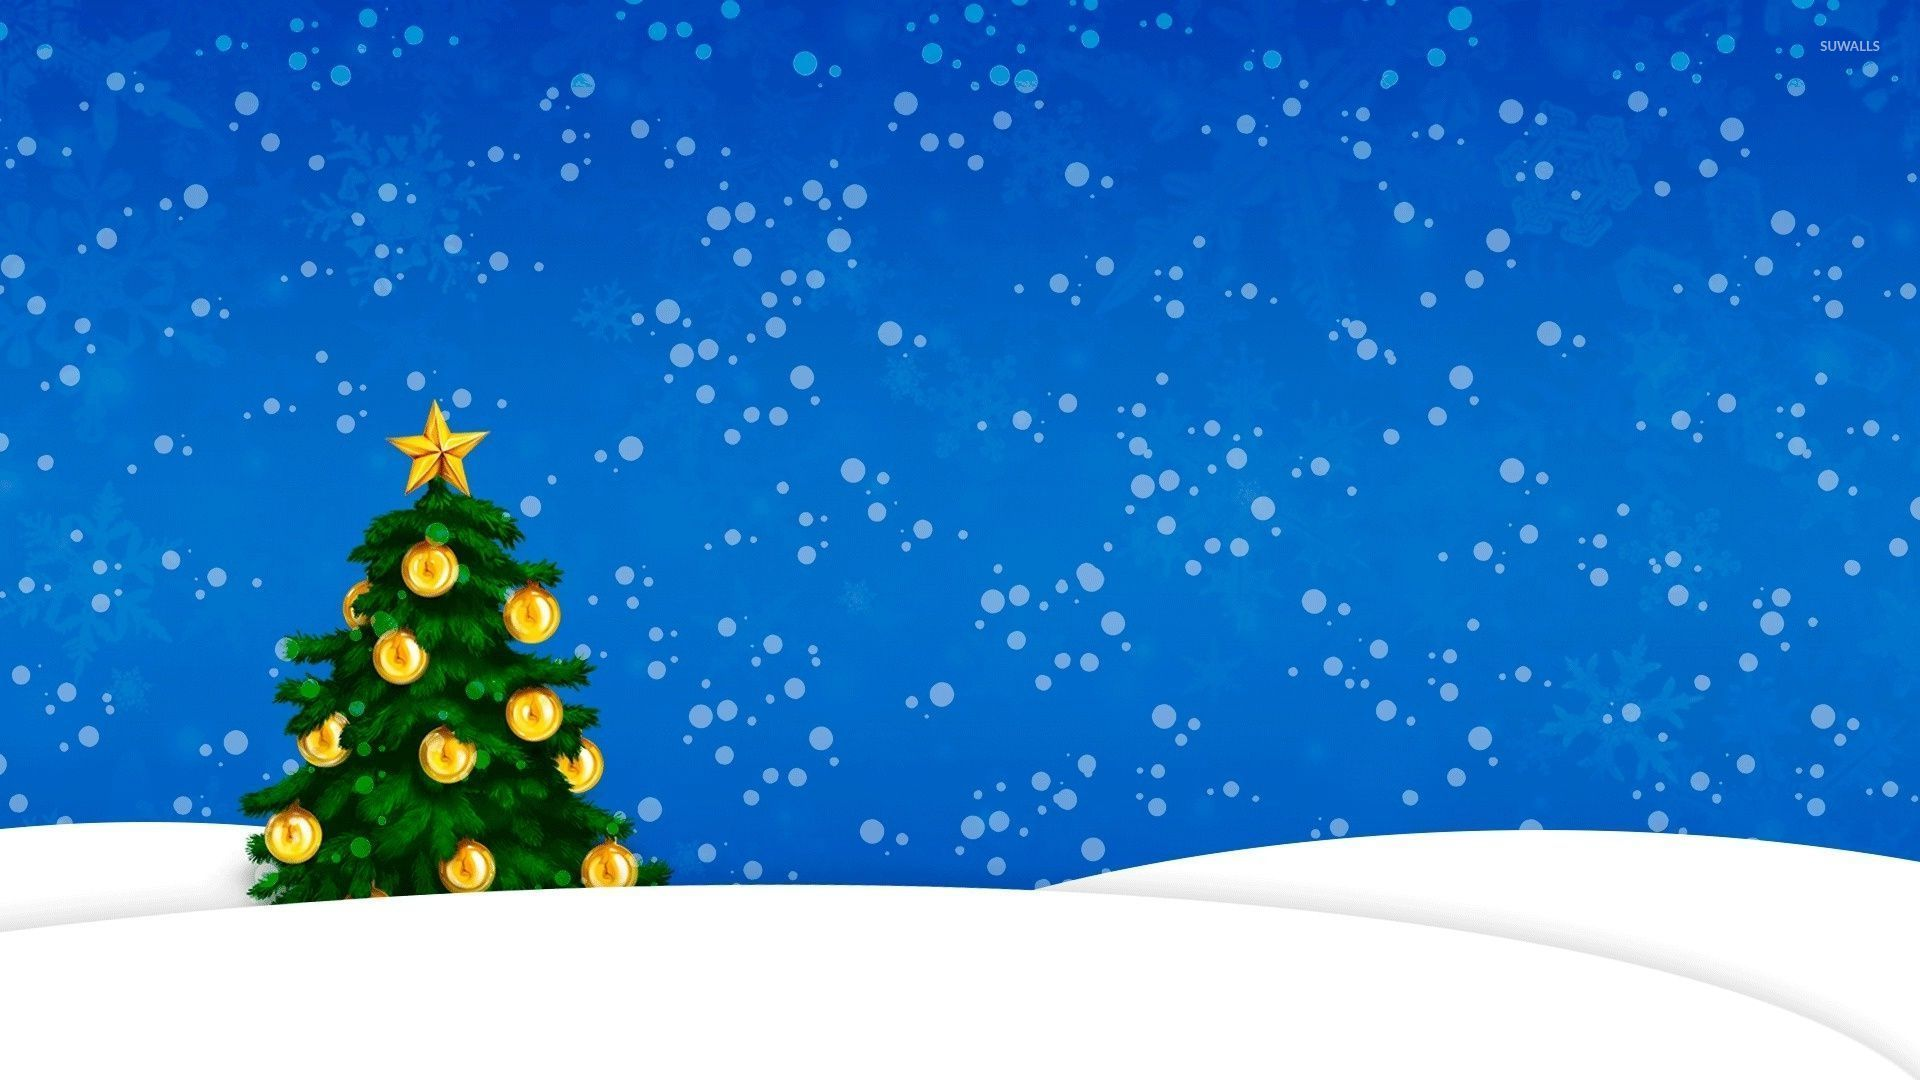 Snow Falling On The Golden Christmas Tree Wallpaper